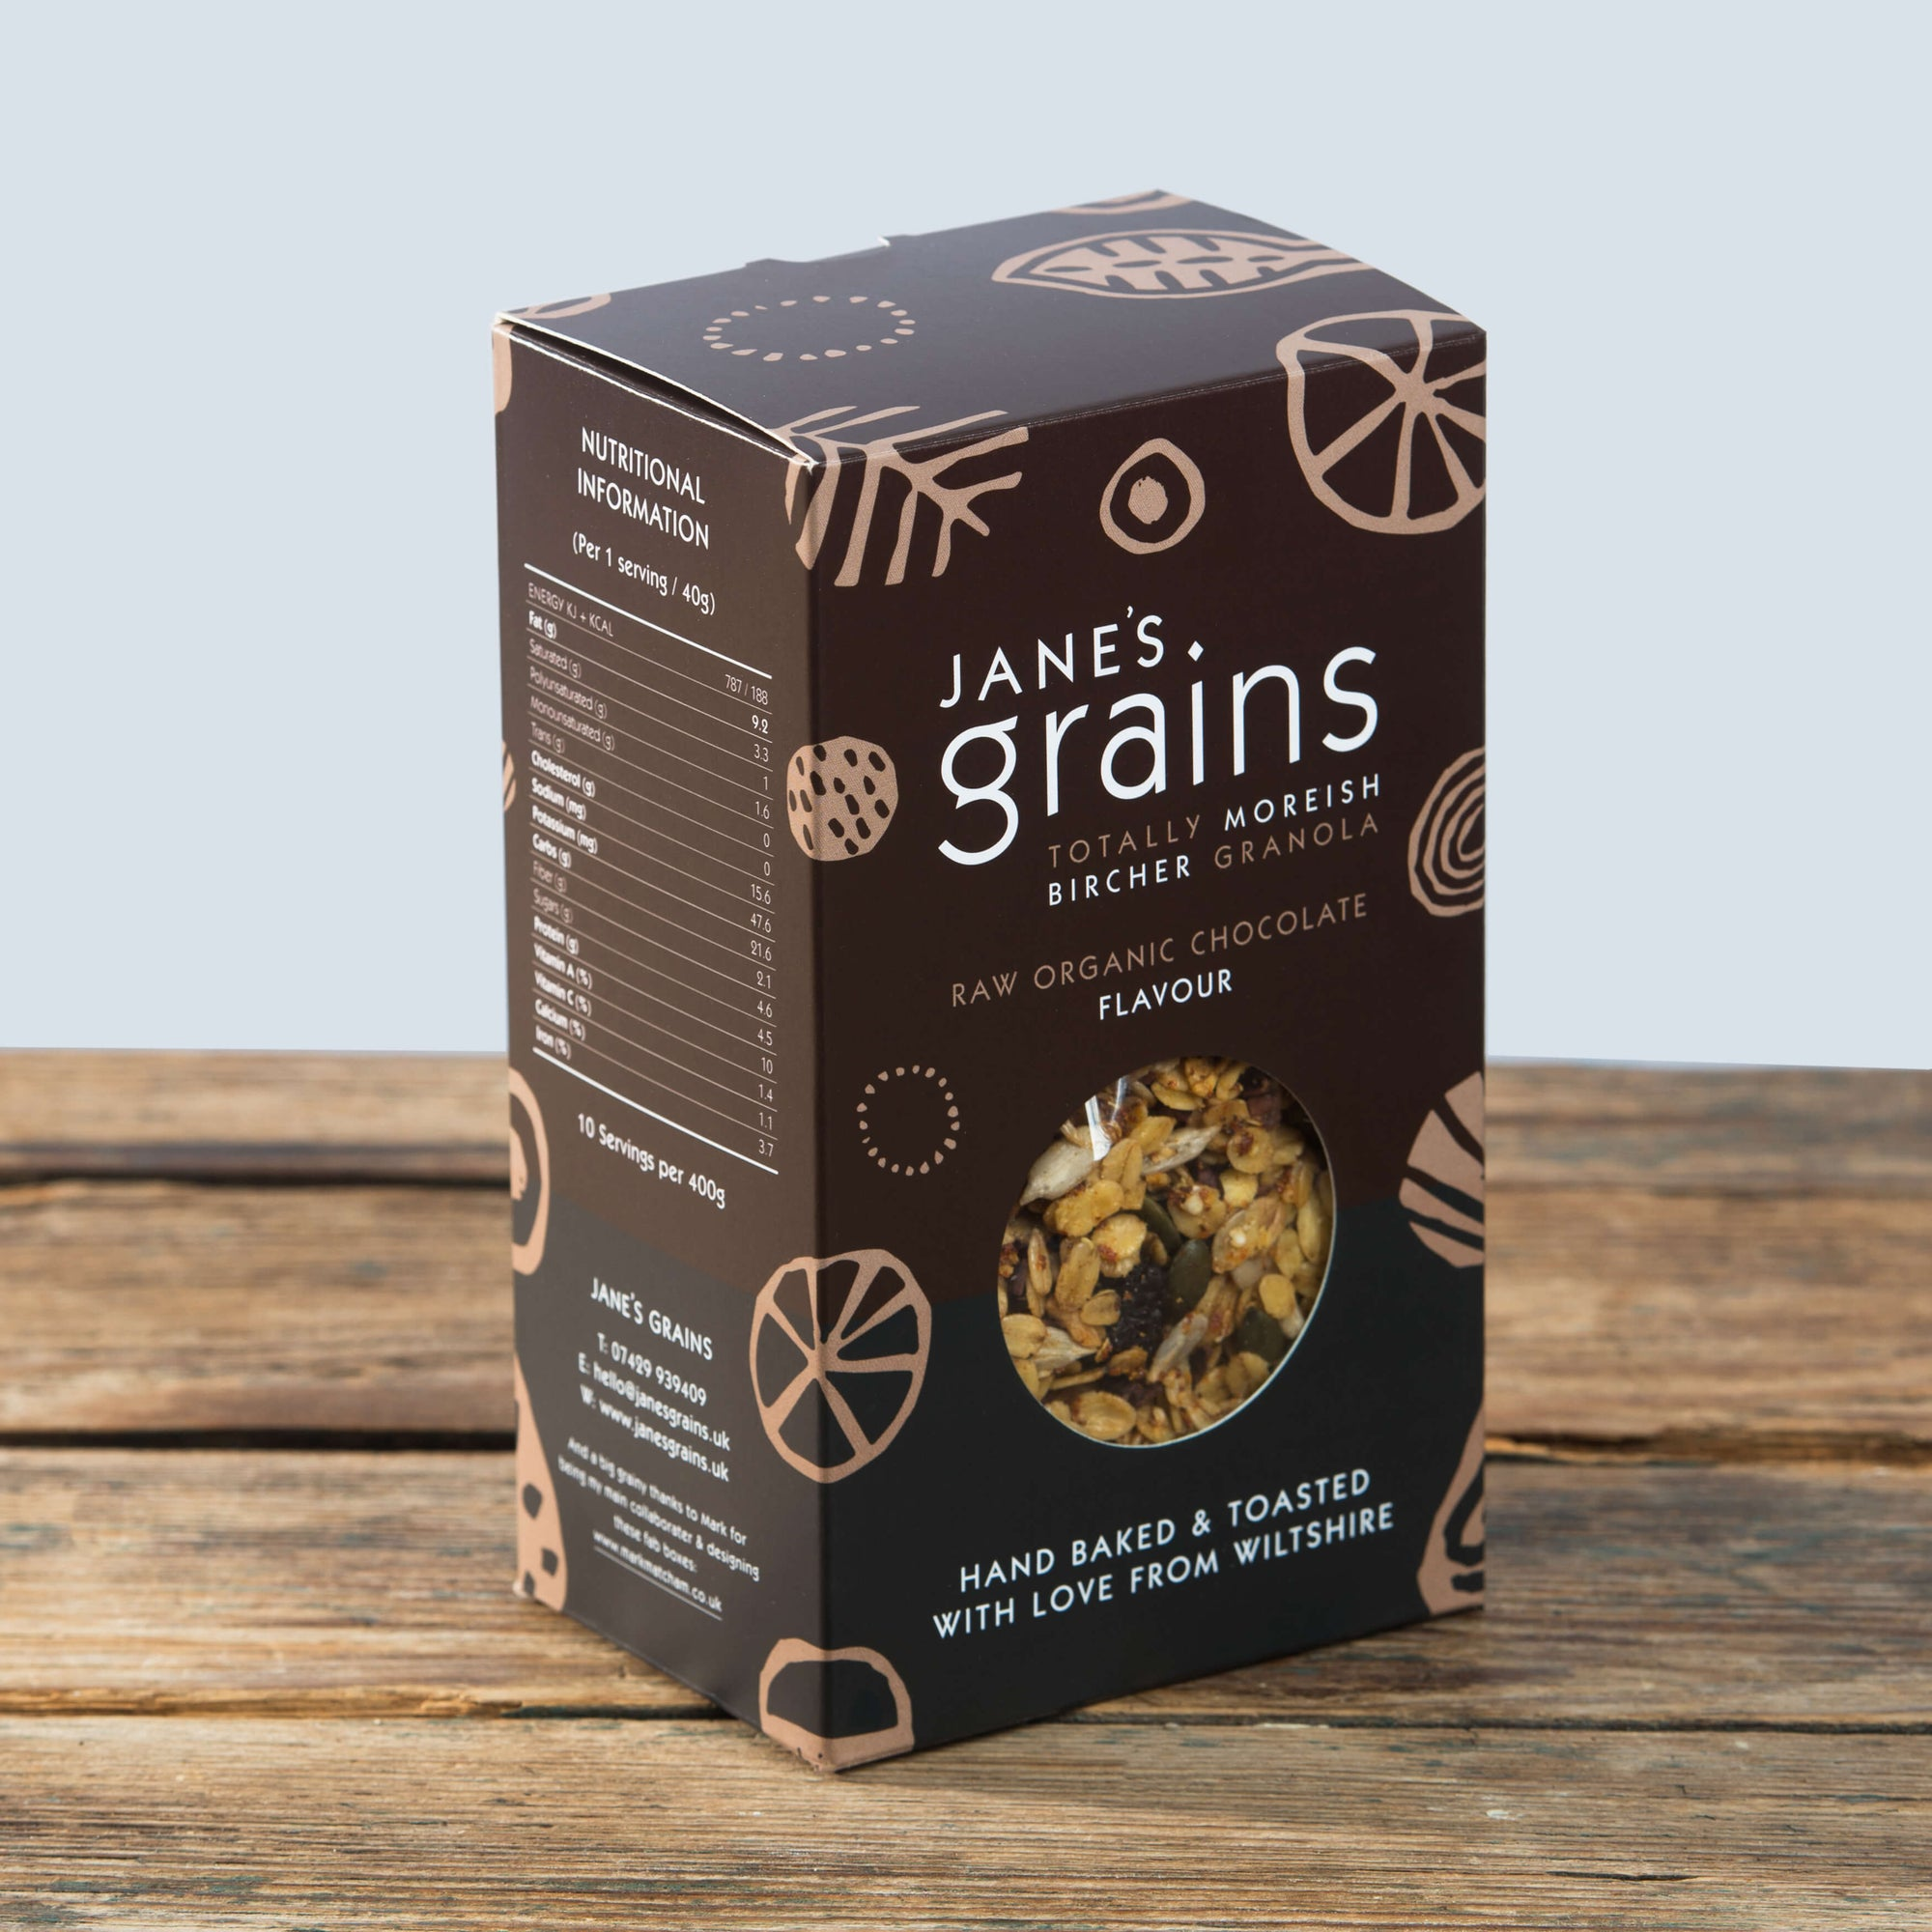 Image of Raw Organic Chocolate<br><span>—</span><b>400g Box £5 / 1kg Pouch £10</b>